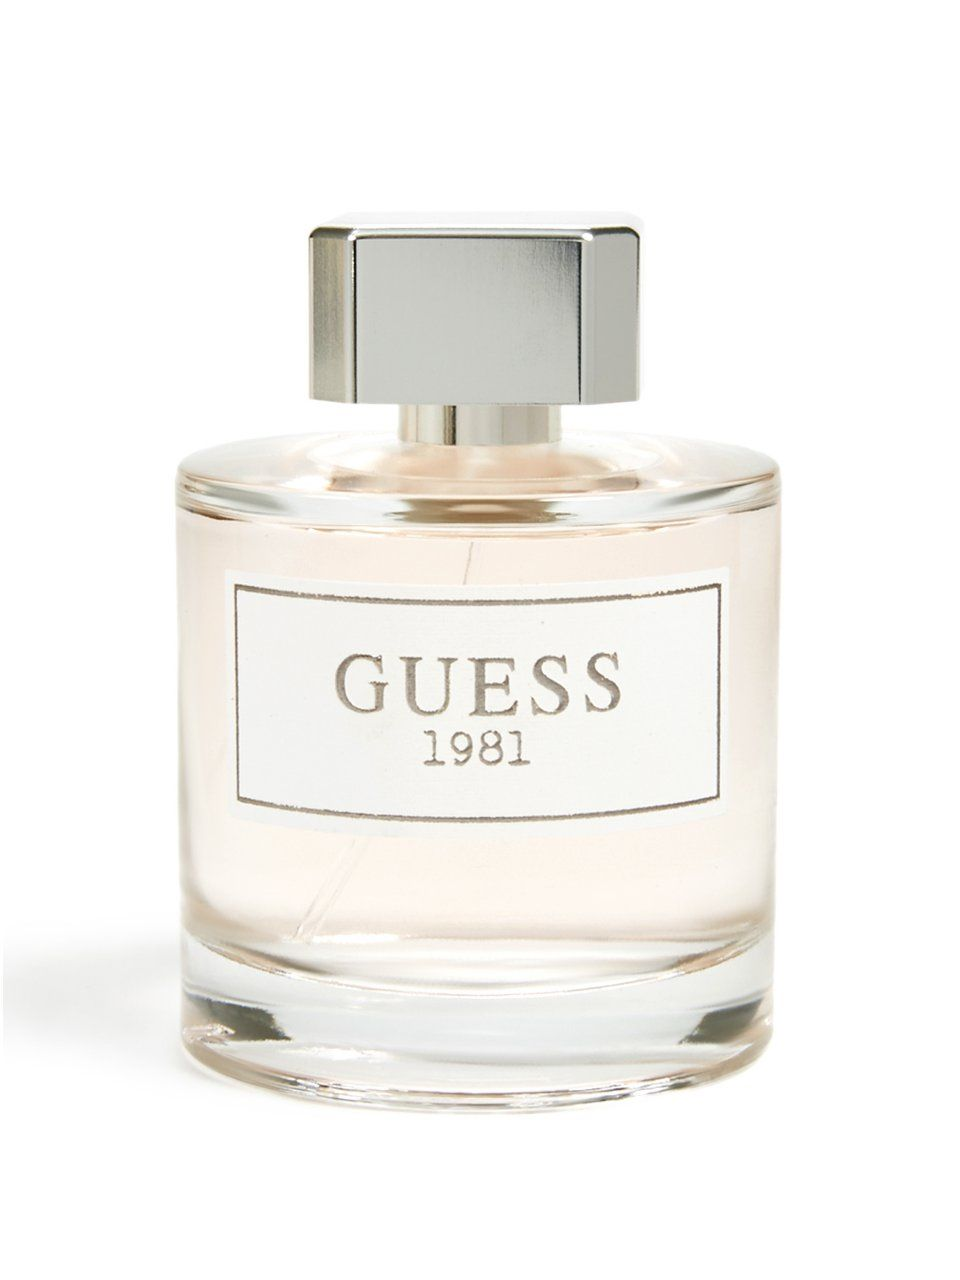 Guess 1981 Eau De Toilette 34 Oz In 2019 Products Perfume